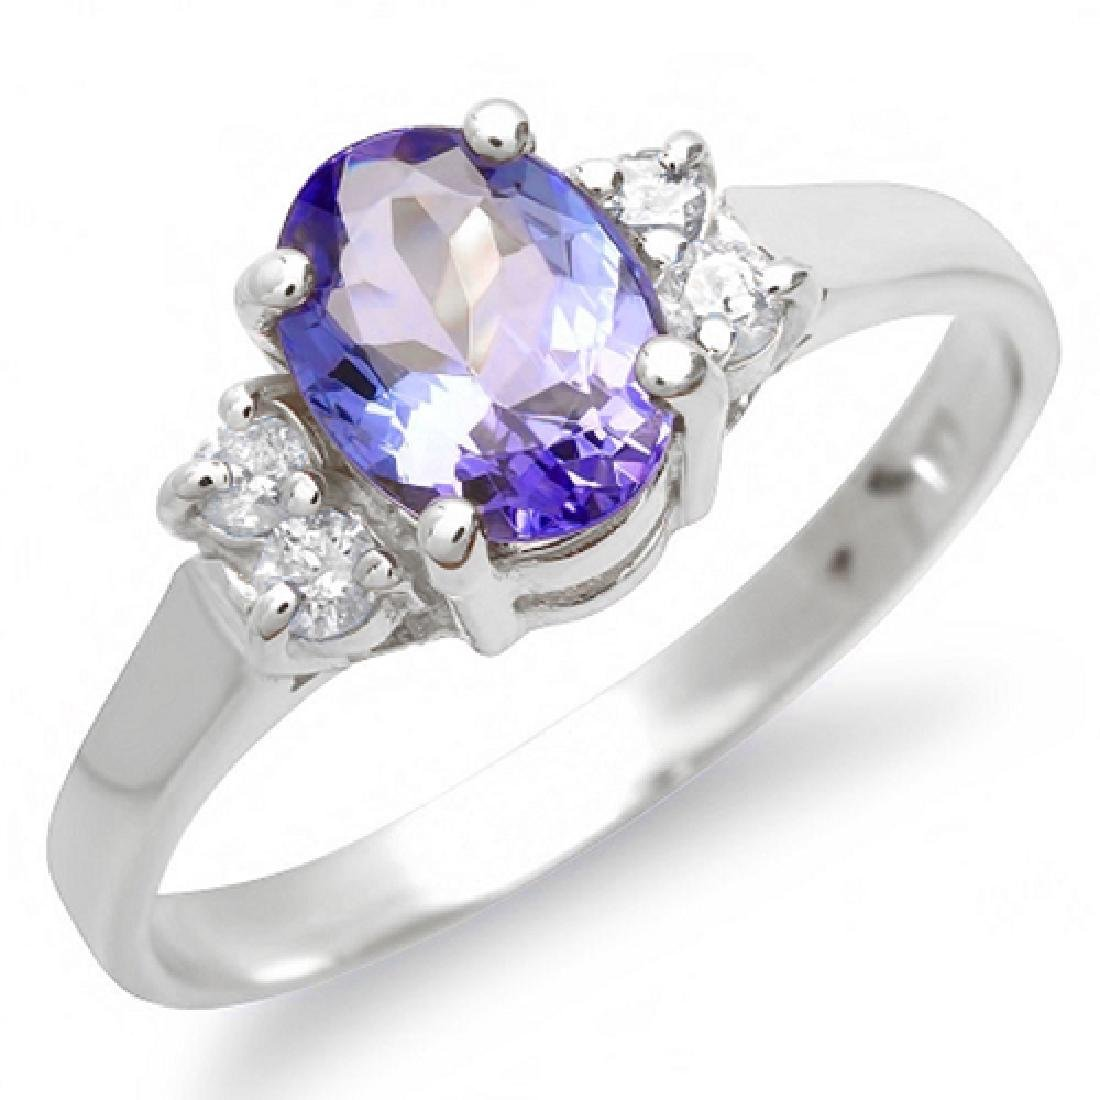 1.15 Carat Natural Tanzanite 18K Solid White Gold